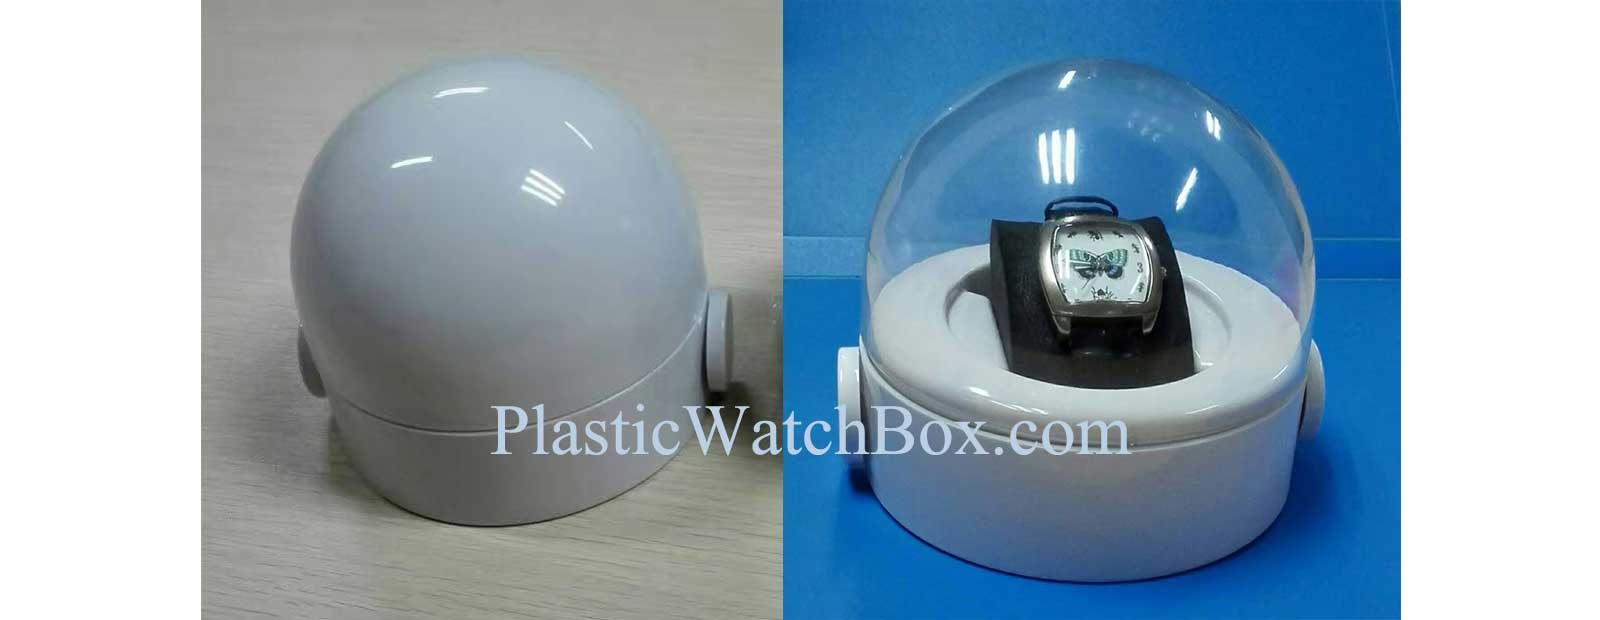 China watch box 050